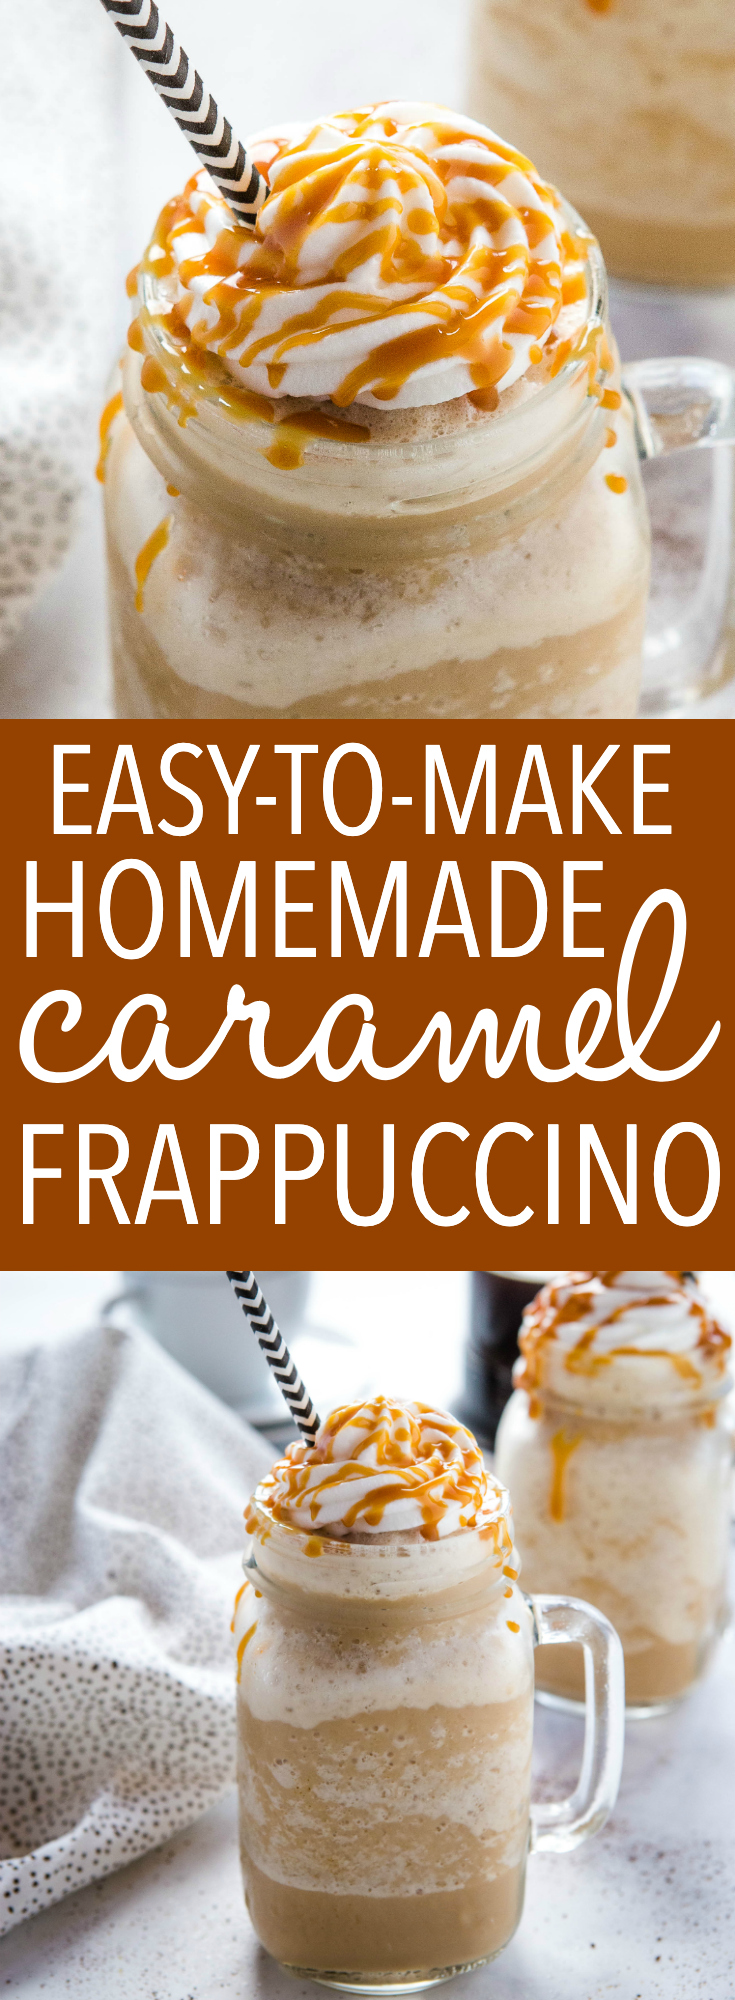 This Easy Homemade Caramel Frappuccino is the perfect refreshing coffee drink that's easy to make in the blender with simple ingredients! Top it with whipped cream and caramel sauce for a coffee shop-style treat! Recipe from thebusybaker.ca! #frappuccino #coffee #drink #summer #starbucks #blender #treat #sweet #blendedcoffee via @busybakerblog